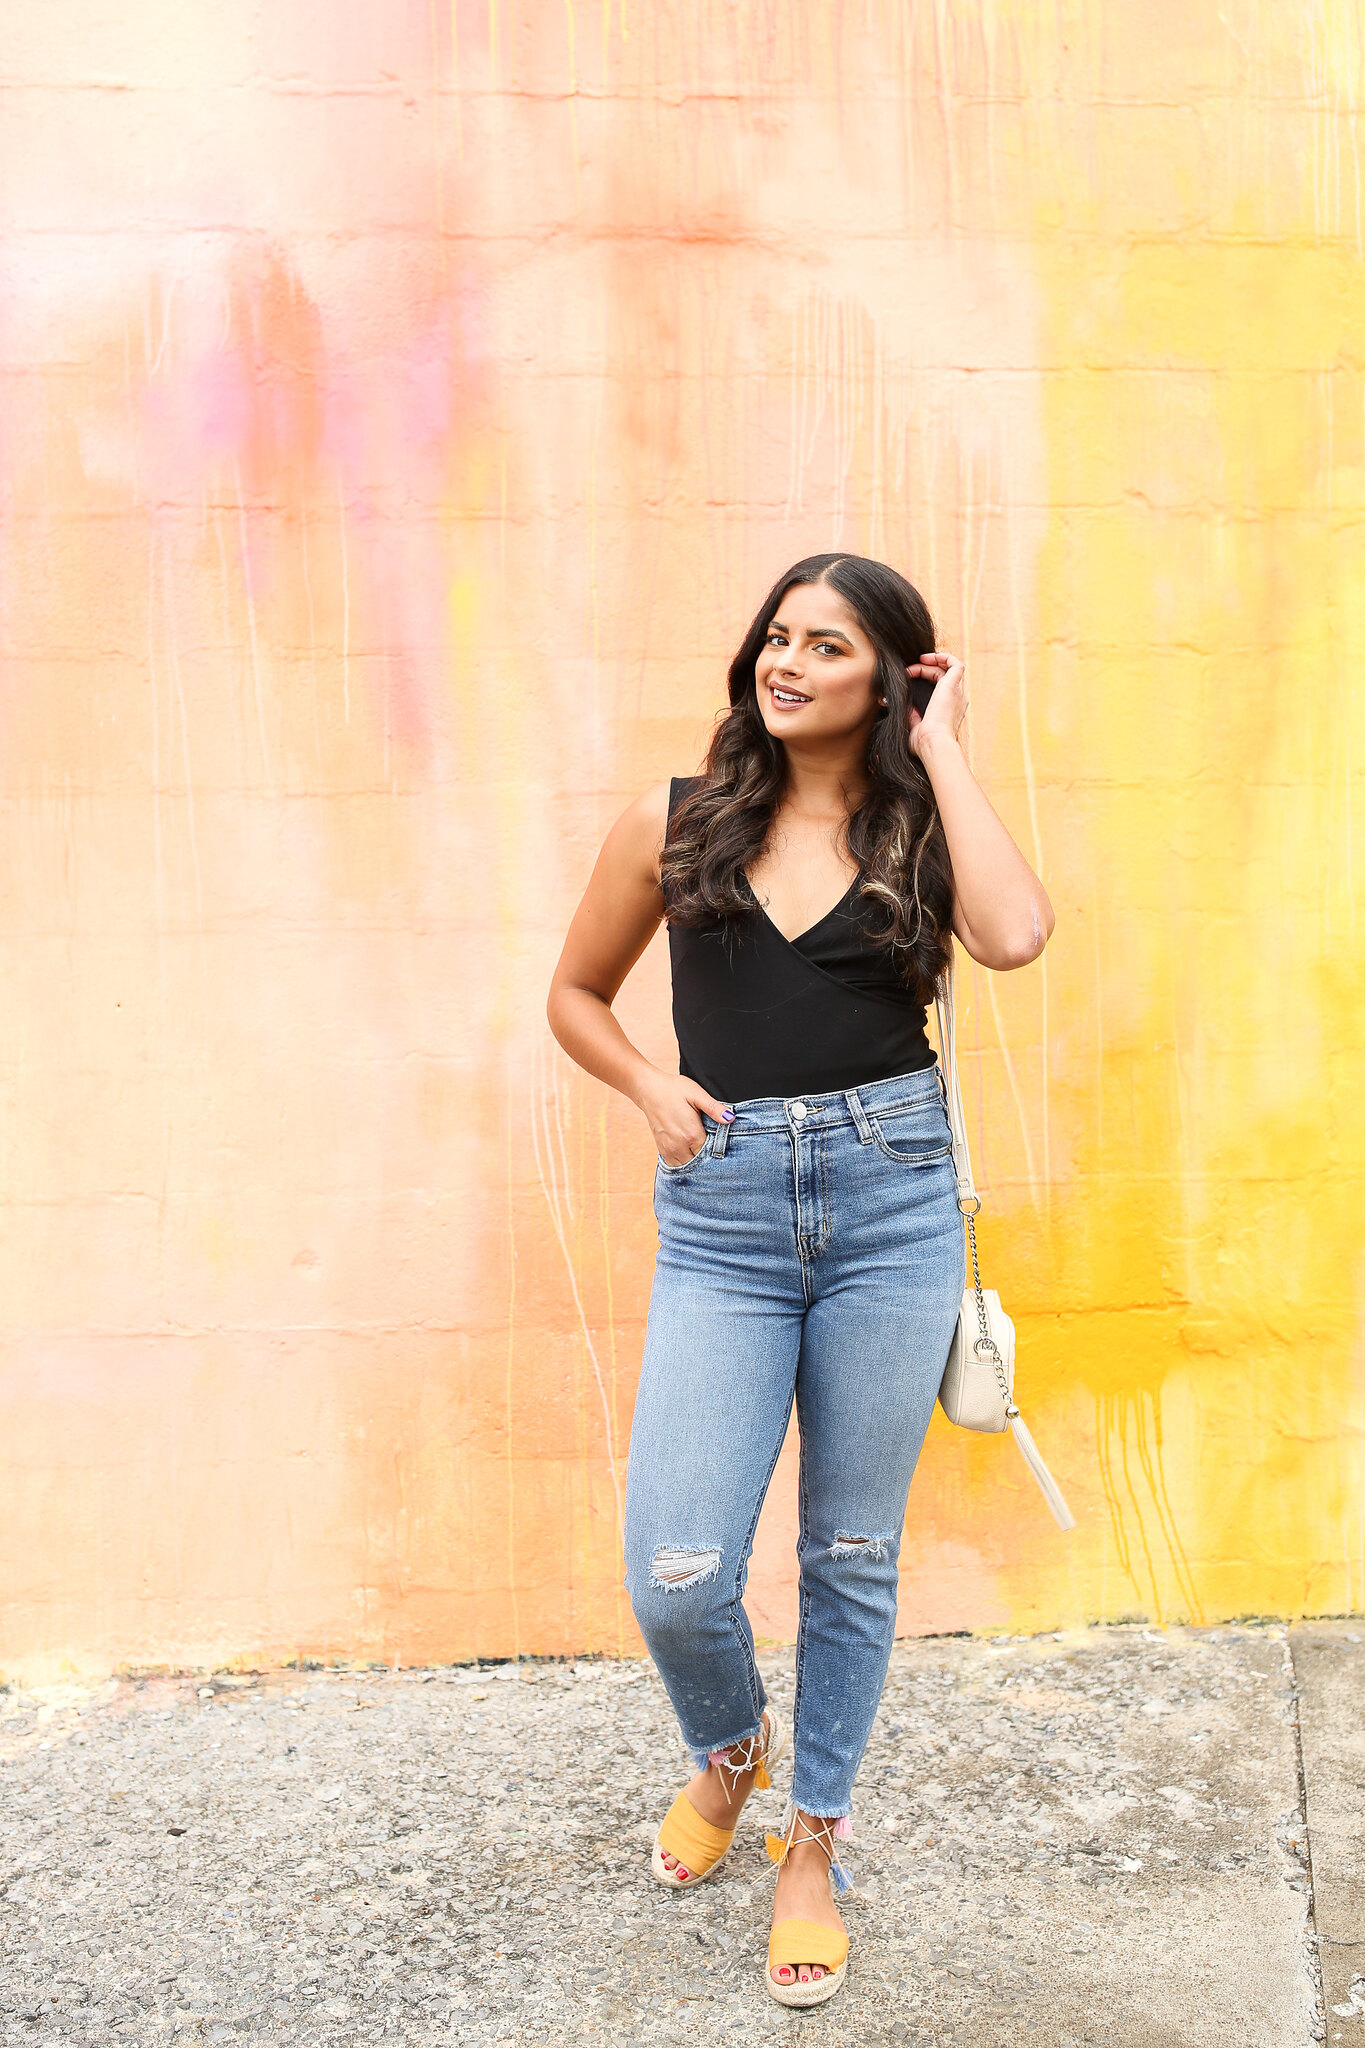 Priya the Blog, Nashville fashion blog, Nashville fashion blogger, Nashville style blog, Nashville style blogger, espadrilles, how to wear espadrilles, espadrille outfit, Urban Outfitters Girlfriend Jeans, late Summer outfit, Nashville mural, lace-up tassel espadrilles